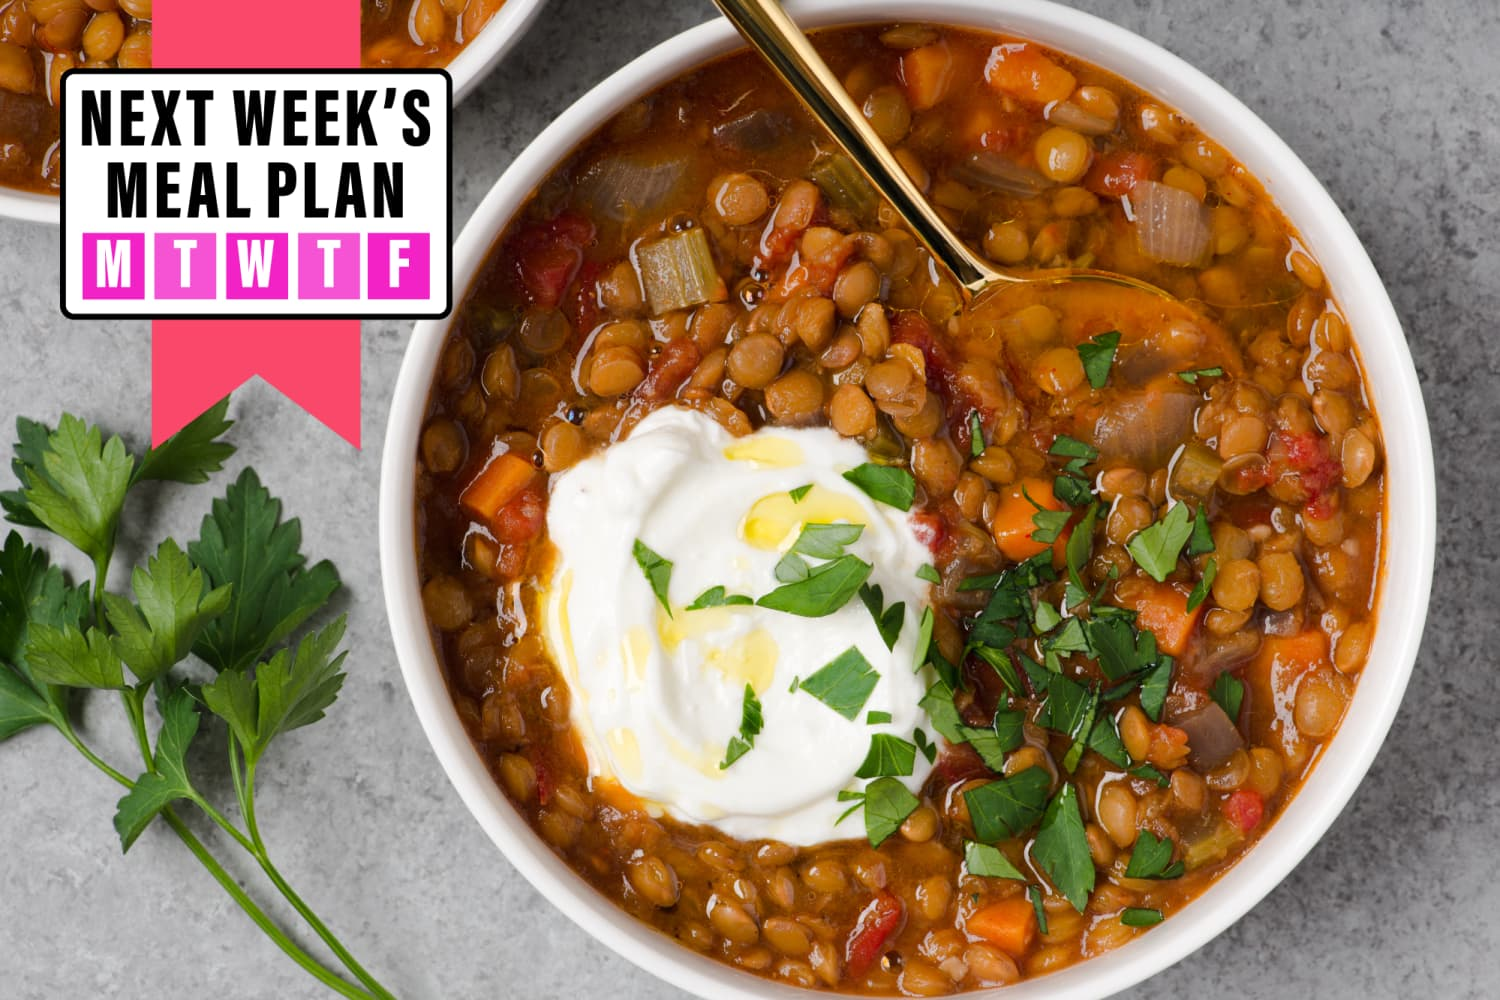 Next Week's Meal Plan: 5 Easy Recipes to Start Your Meal Plan